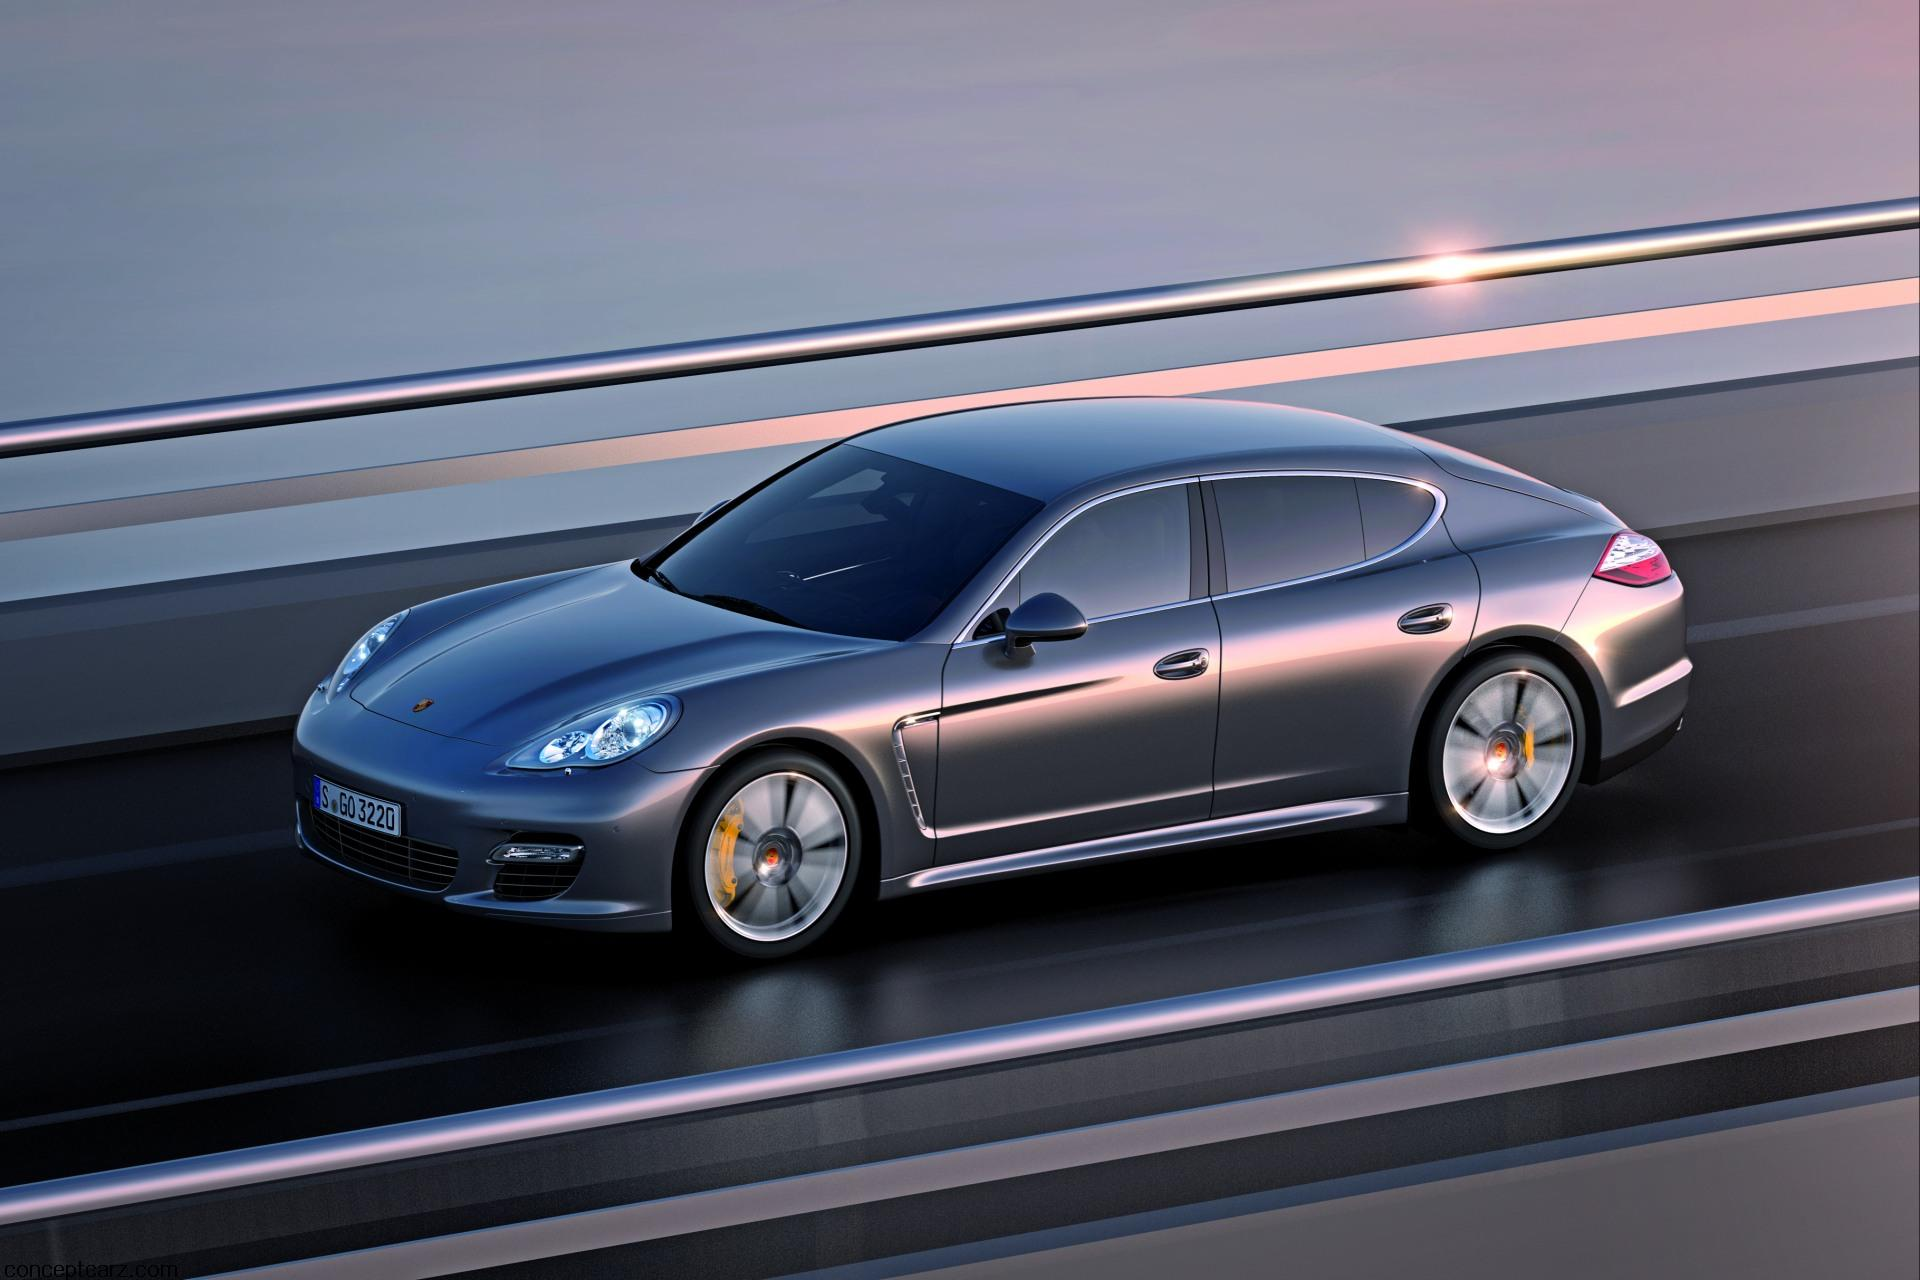 2011 Porsche Panamera Turbo S News and Information